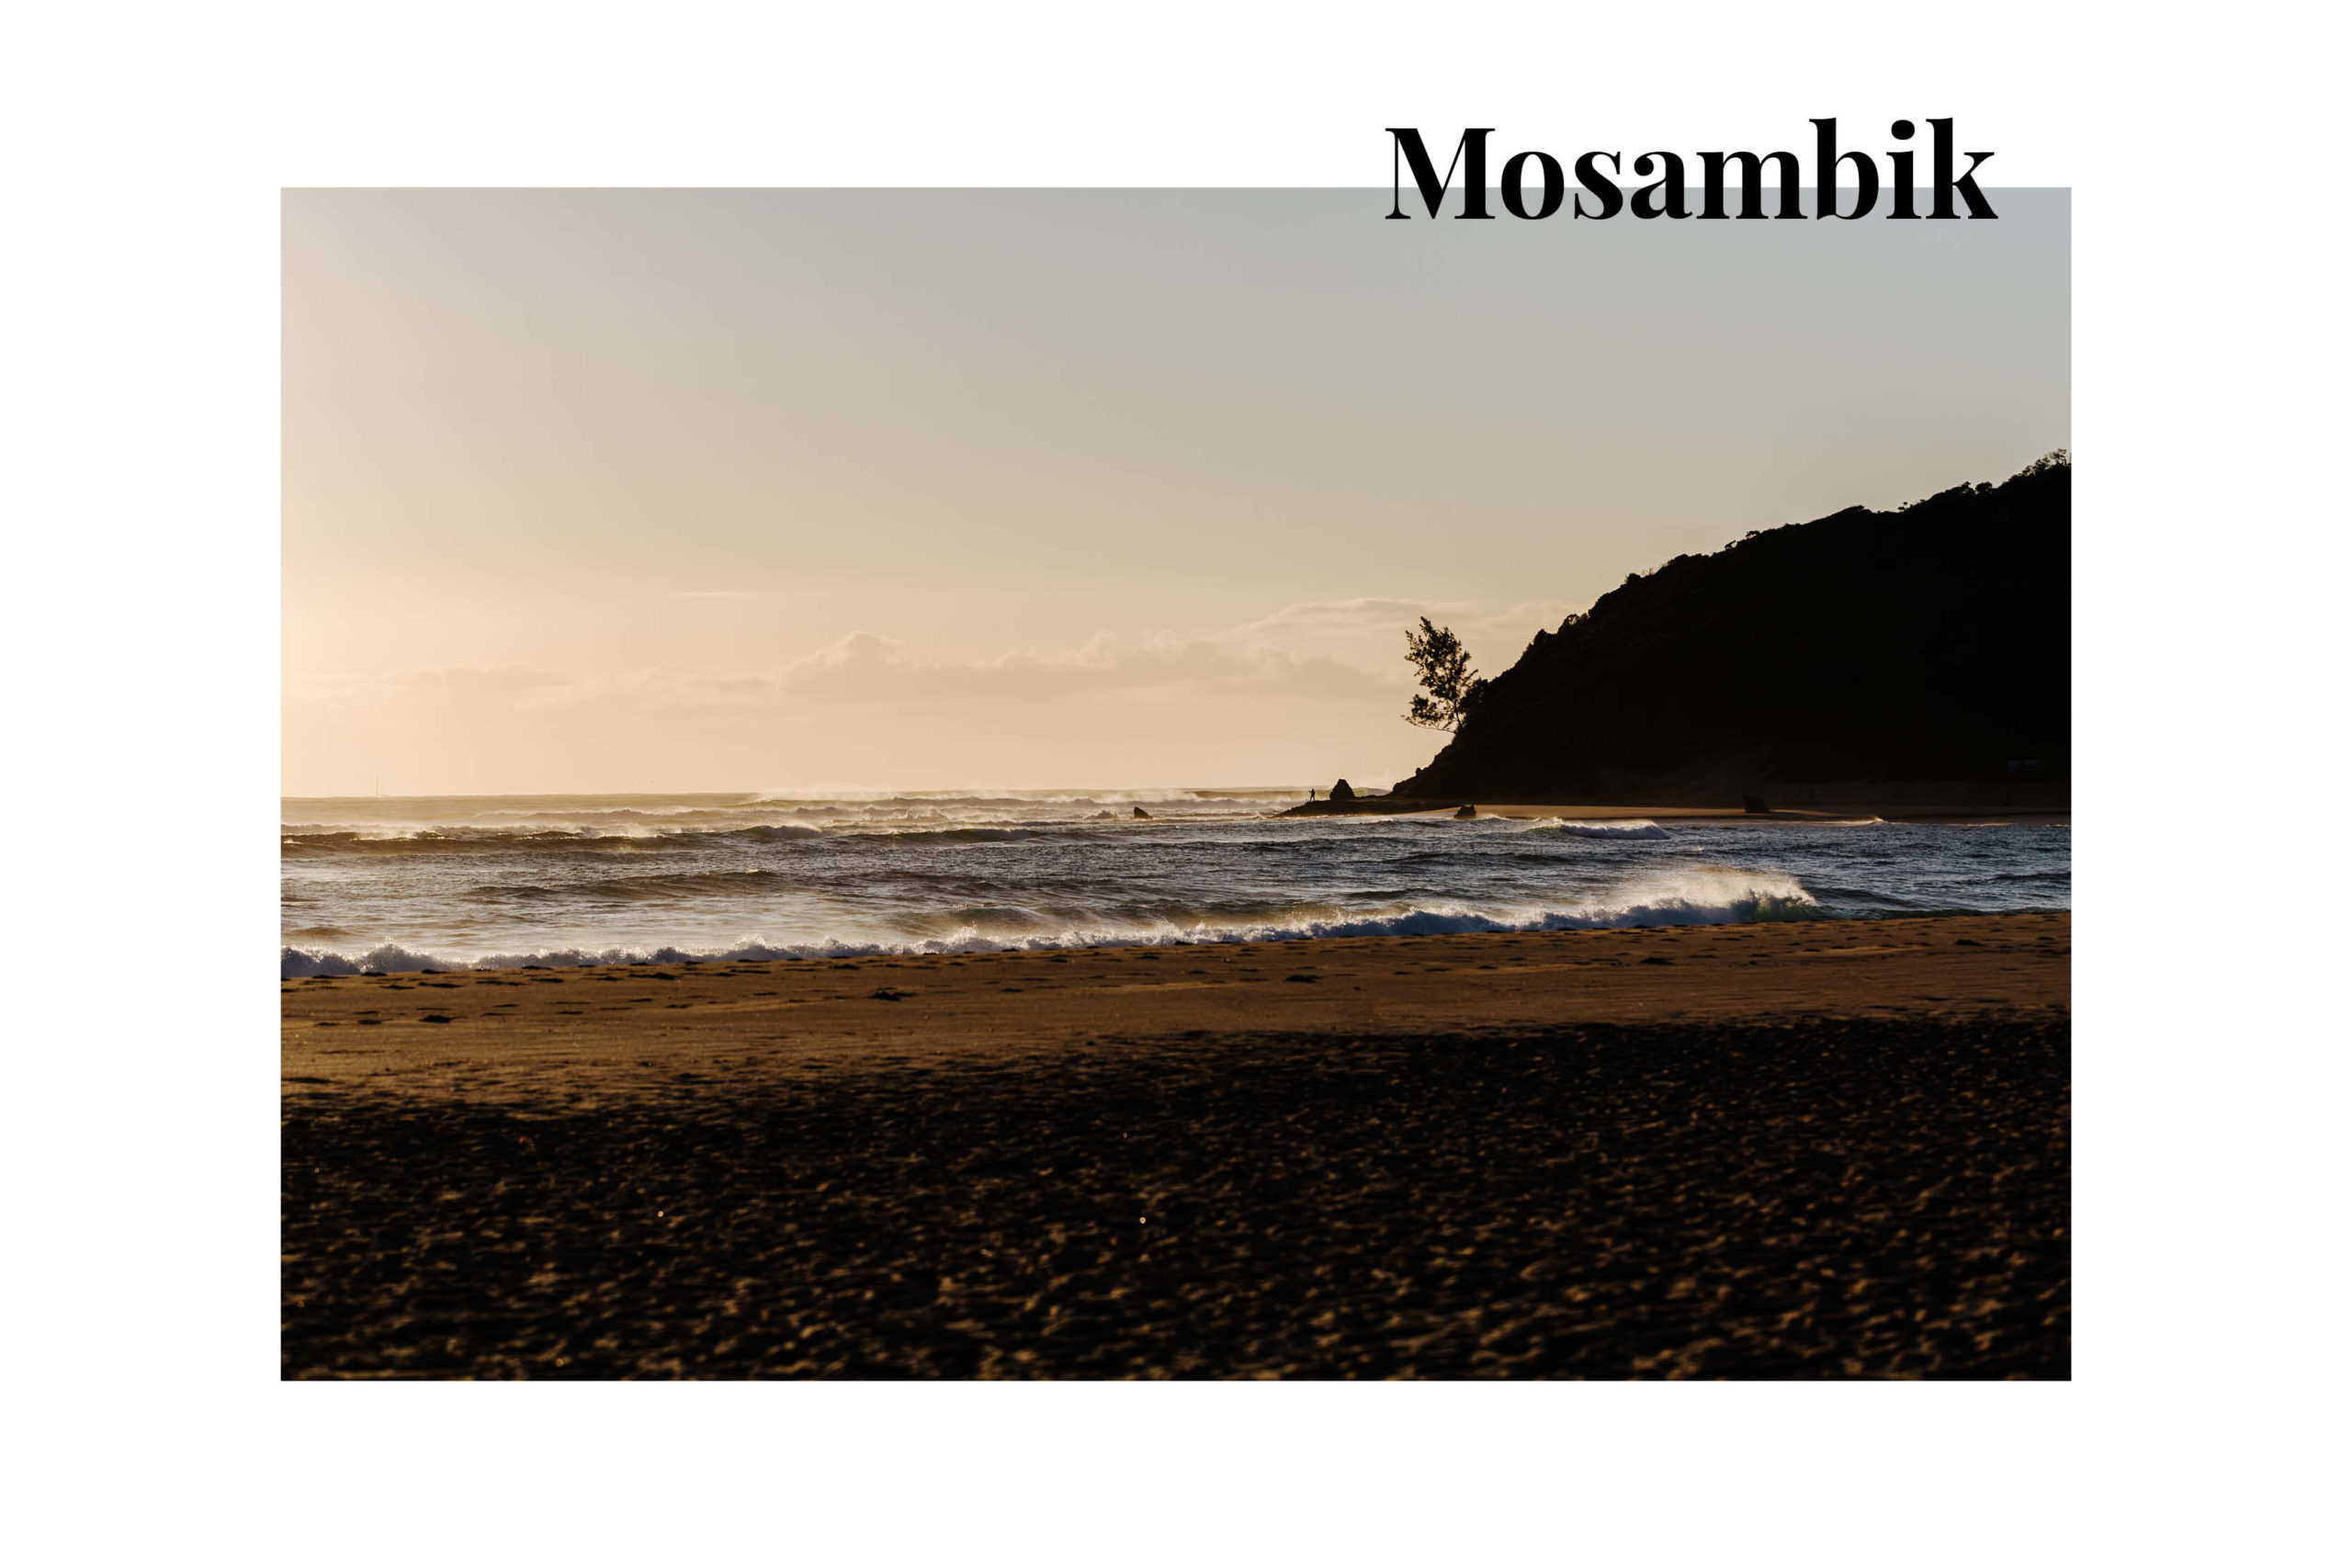 moasambik-roadtrip-ponta-do-ouro-reisebericht